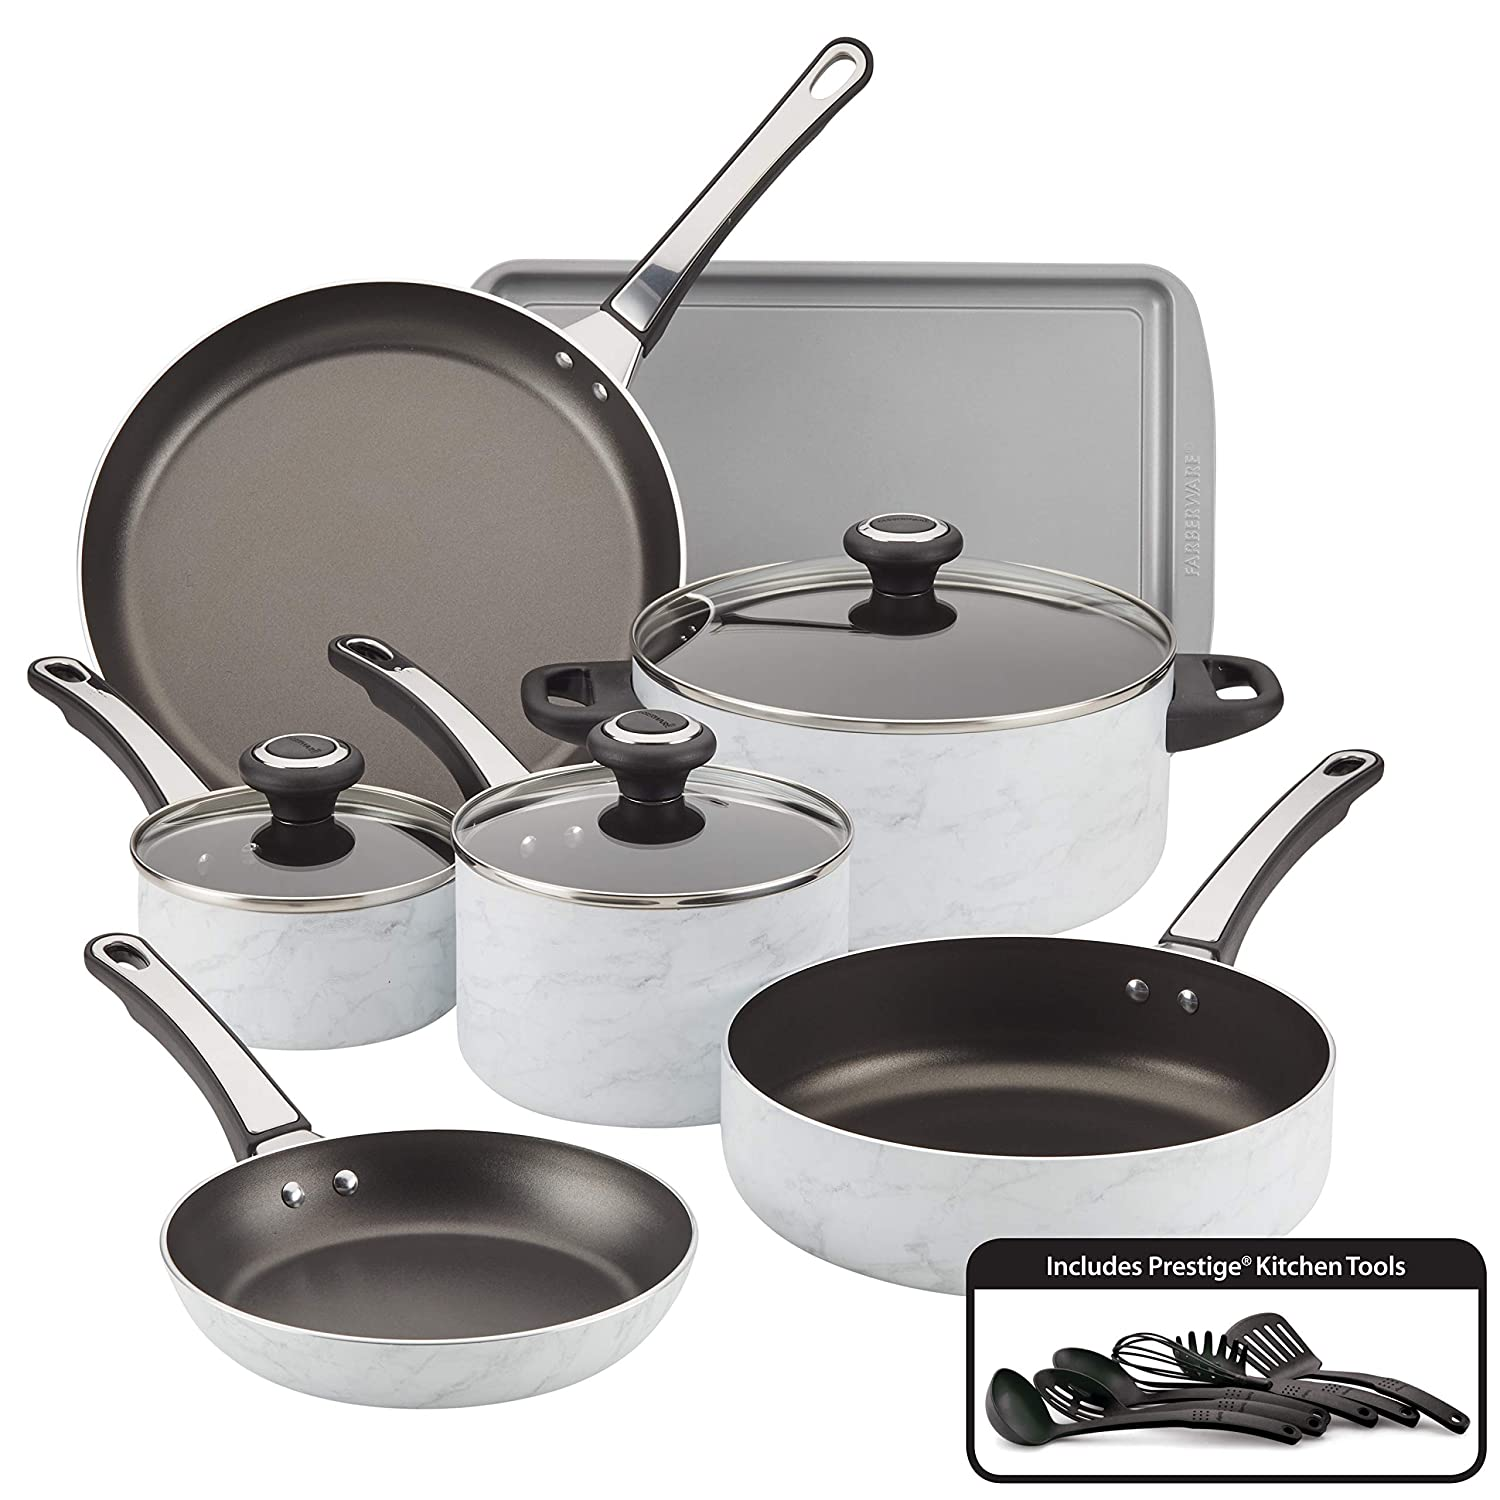 Farberware 22258 16-Piece Aluminum Cookware Set, White Marble